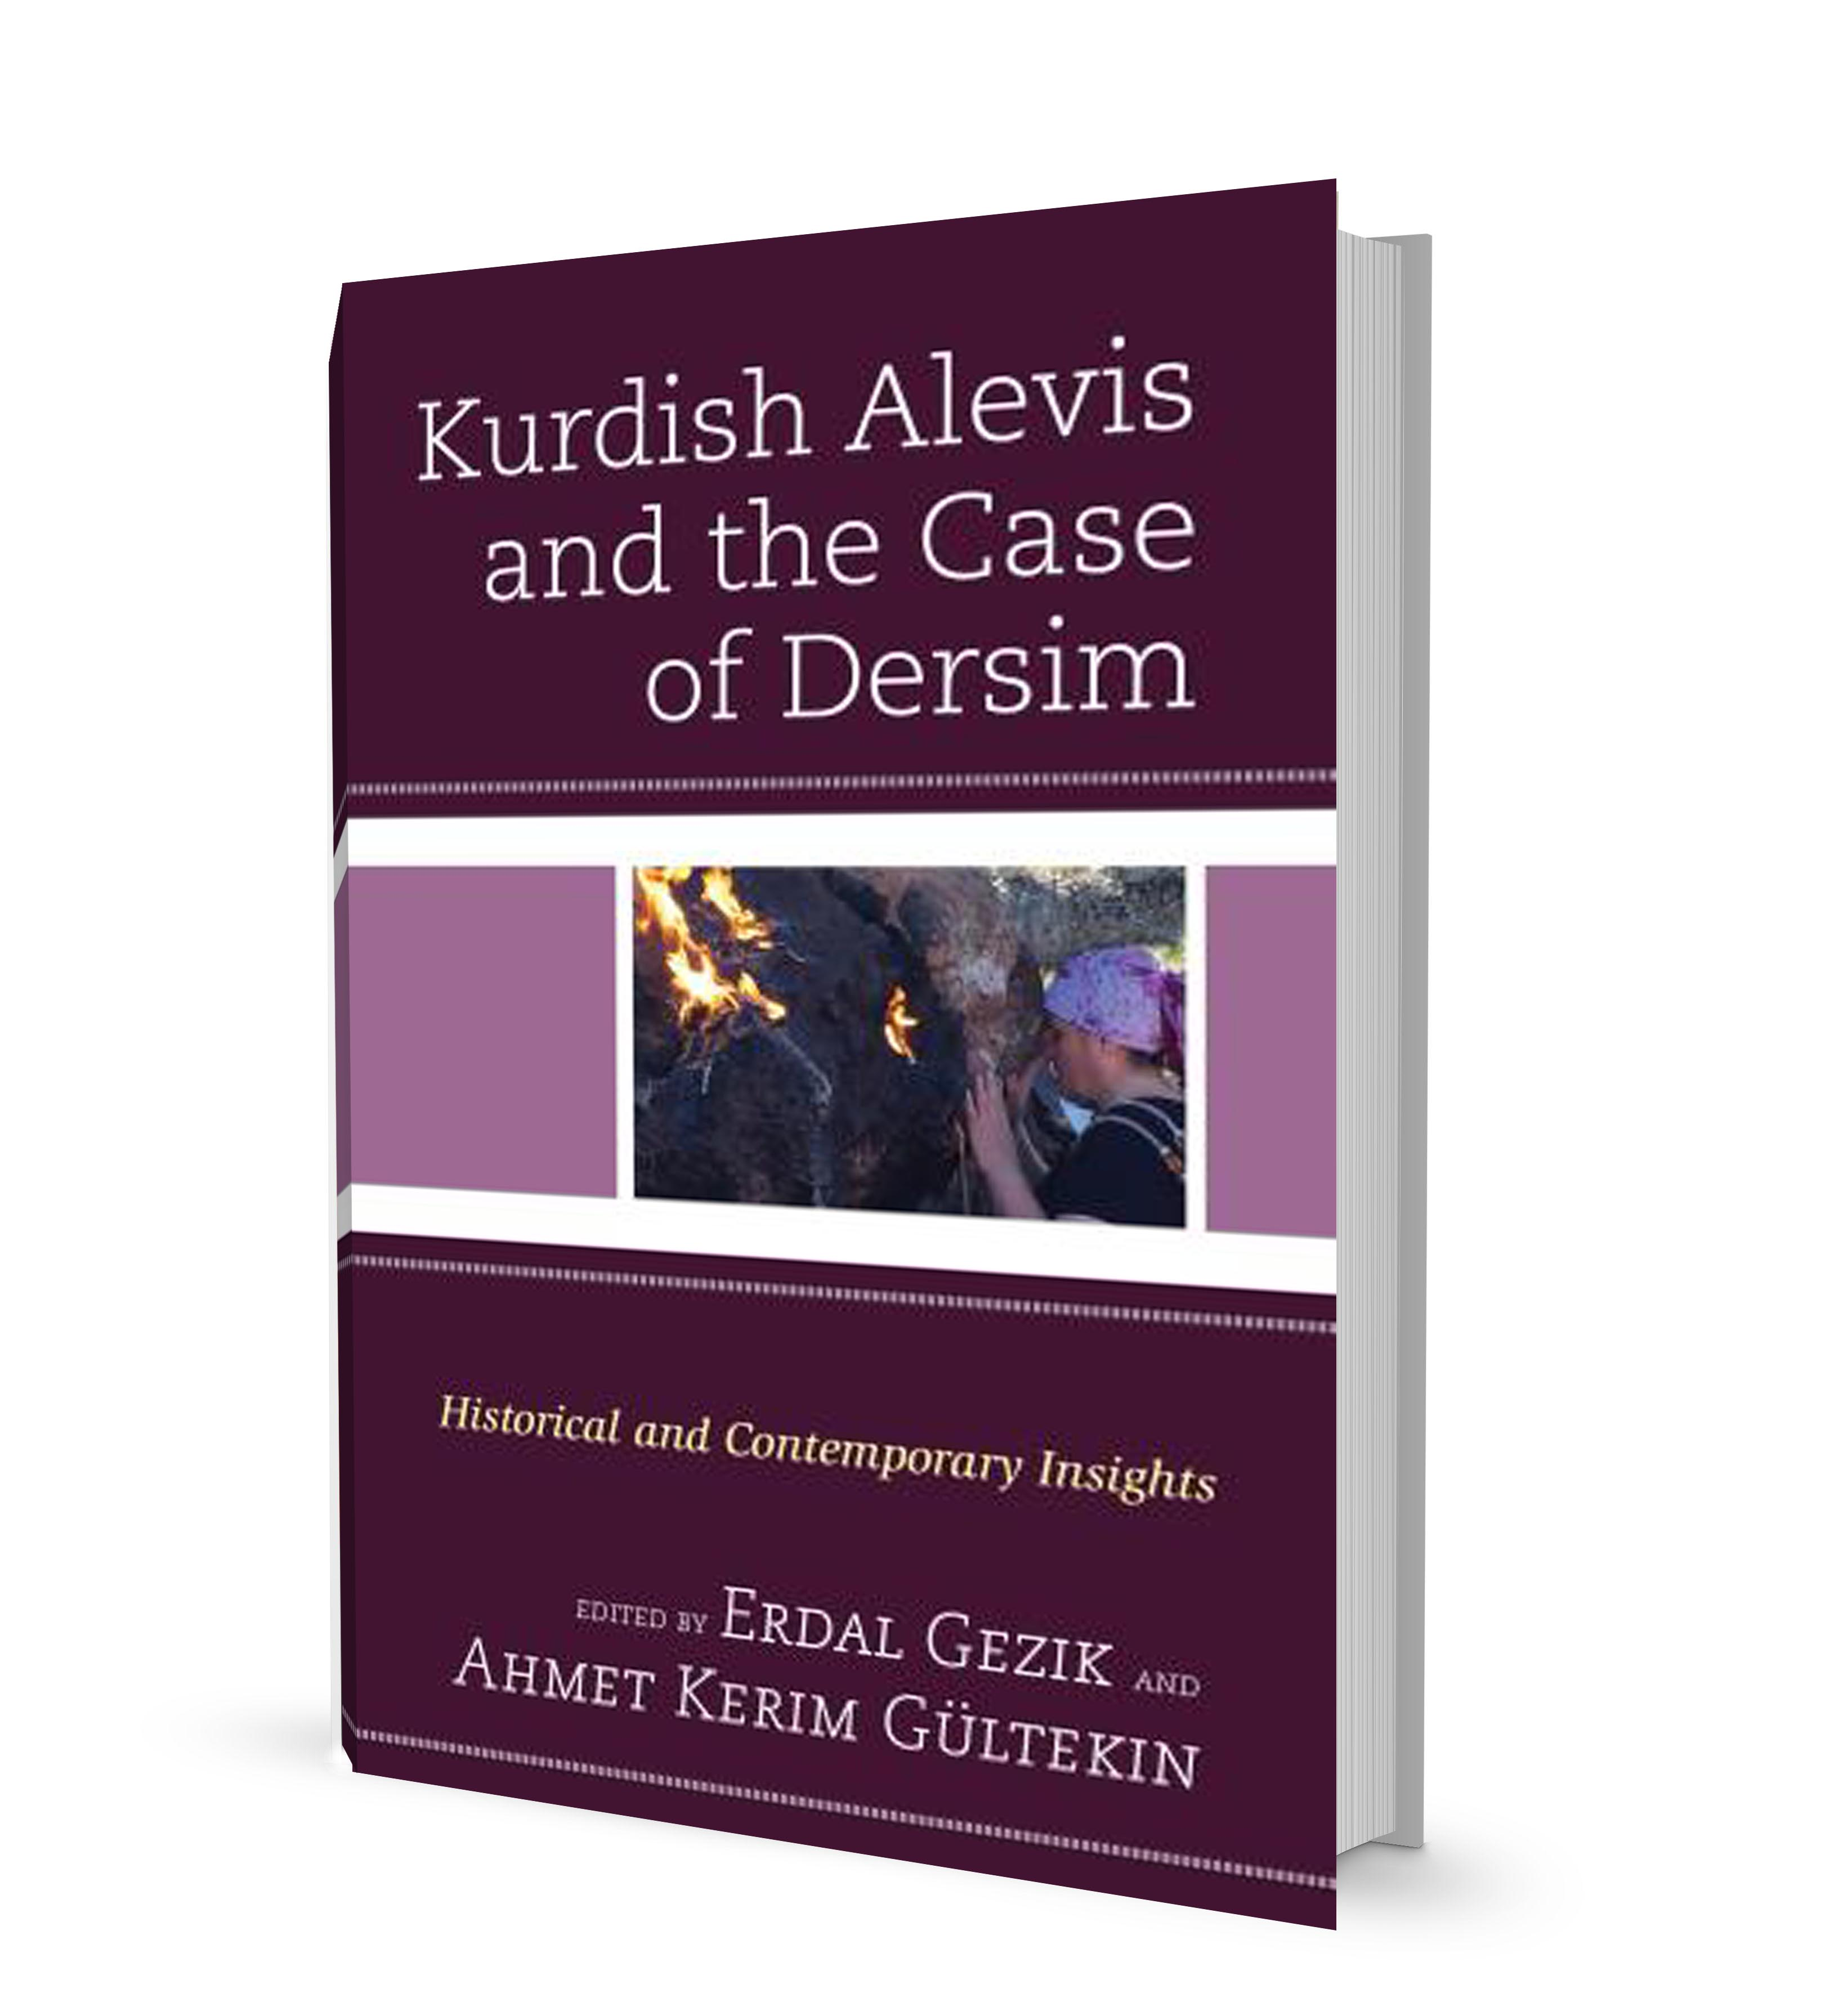 Kurdish Alevis and the Case of Dersim